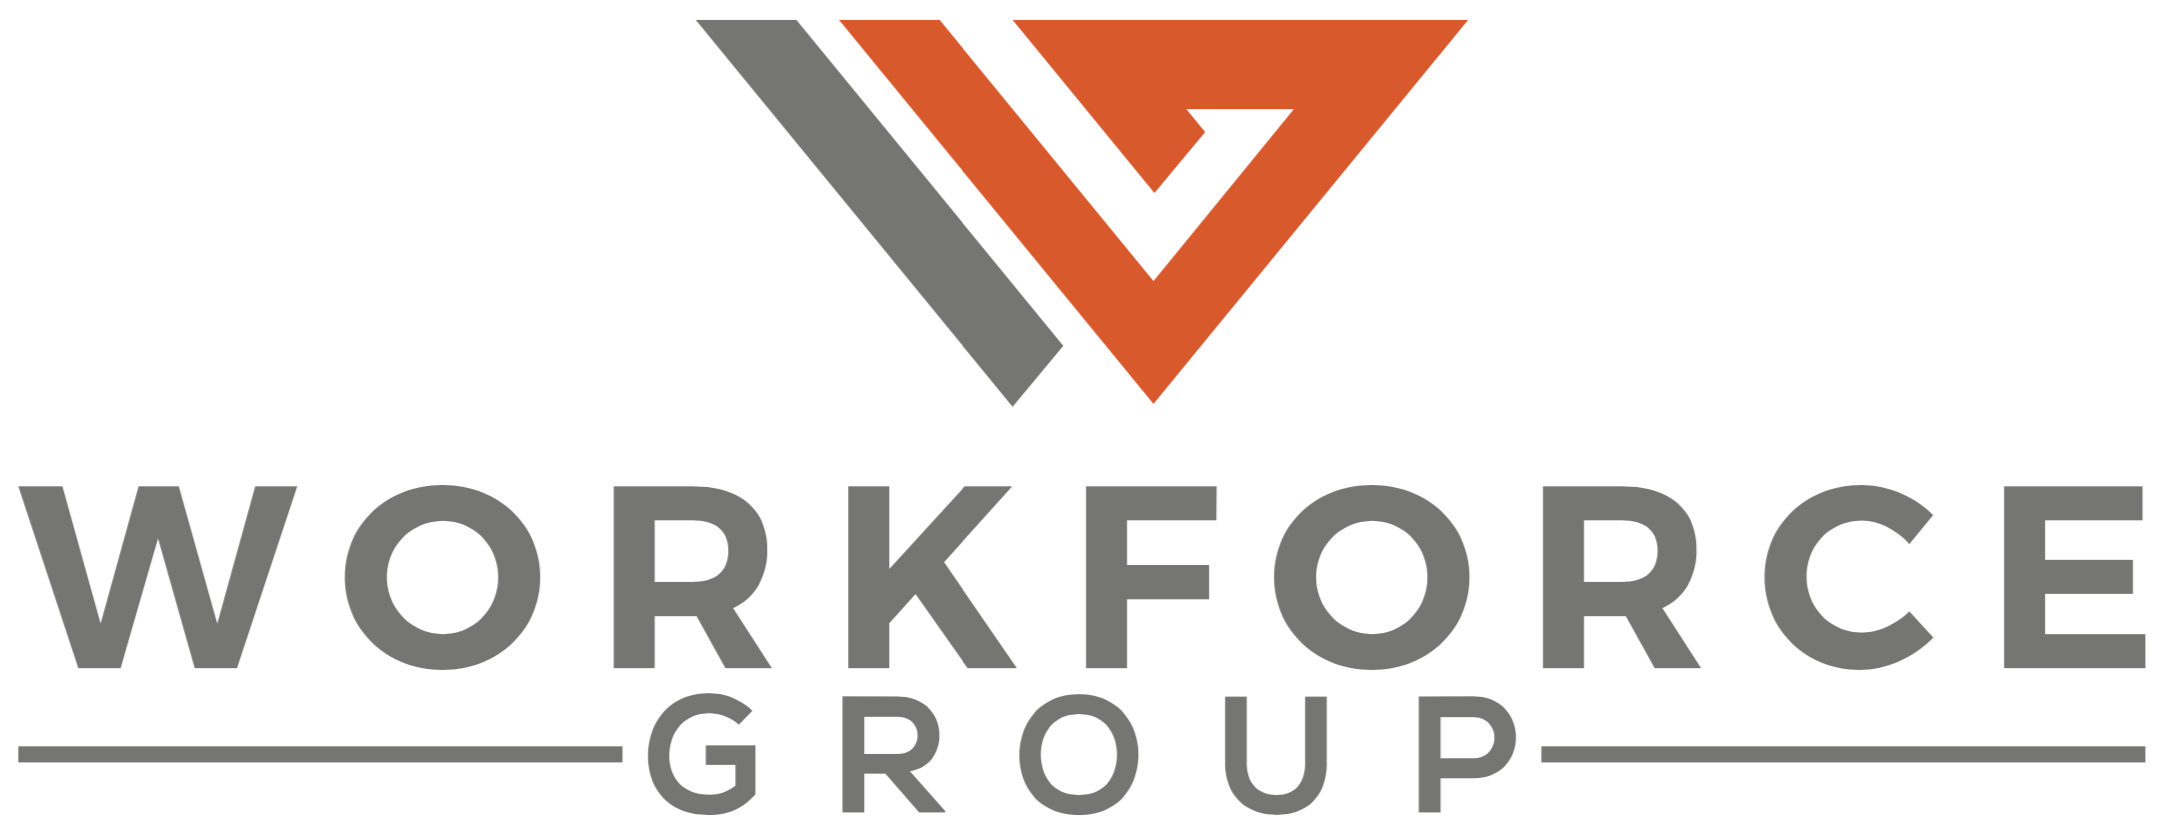 The Workforce Group Logo